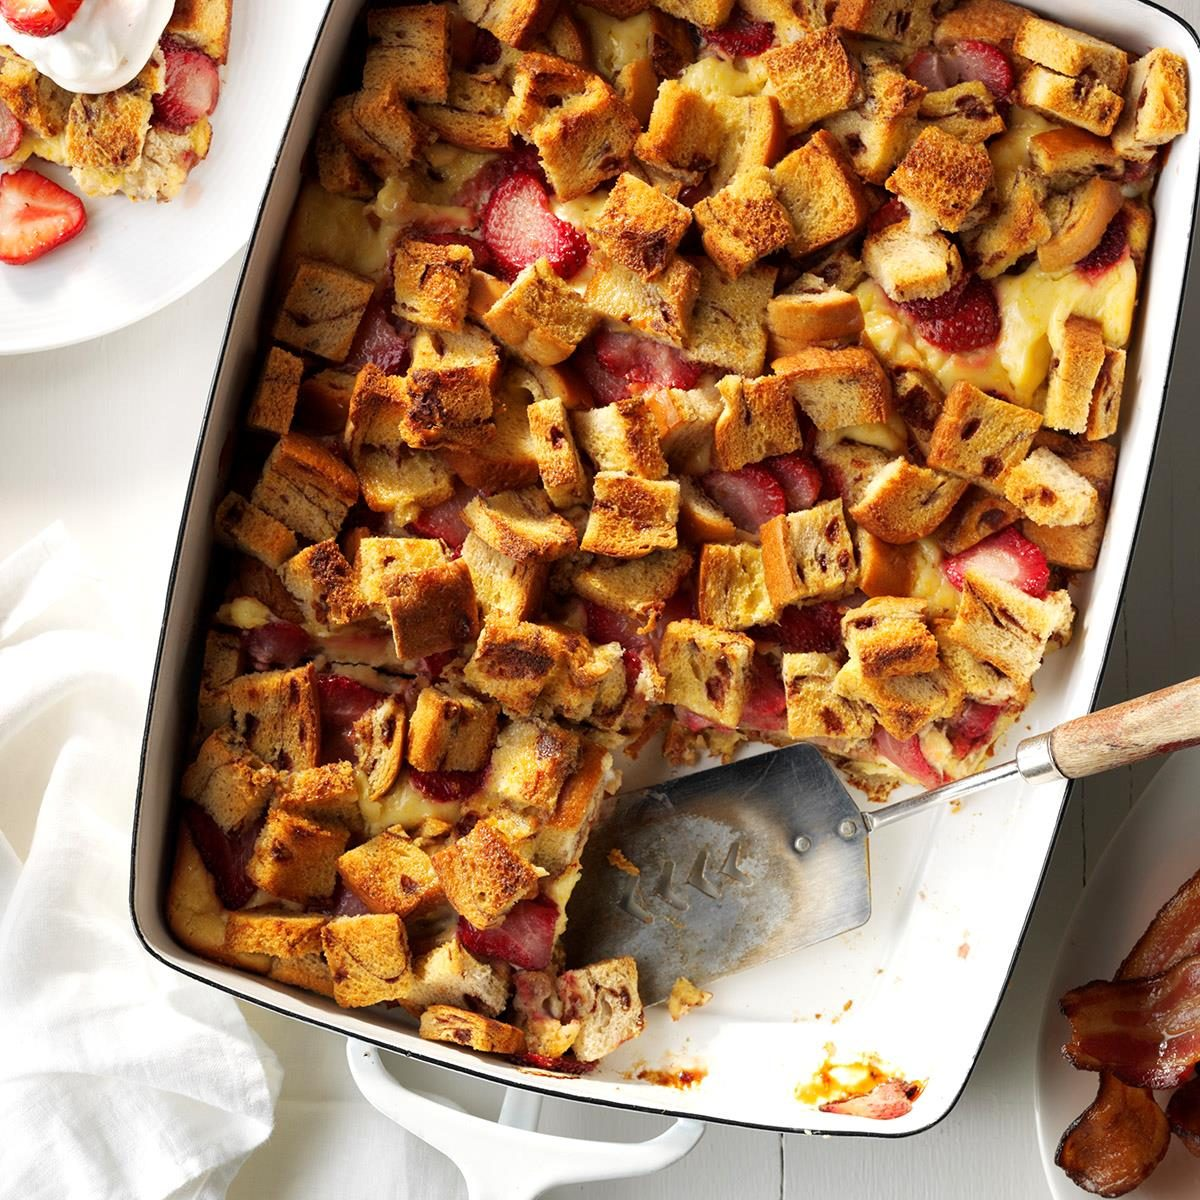 40 Easy Potluck Recipes For Your Graduation Party: Creamy Strawberry French Toast Bake Recipe